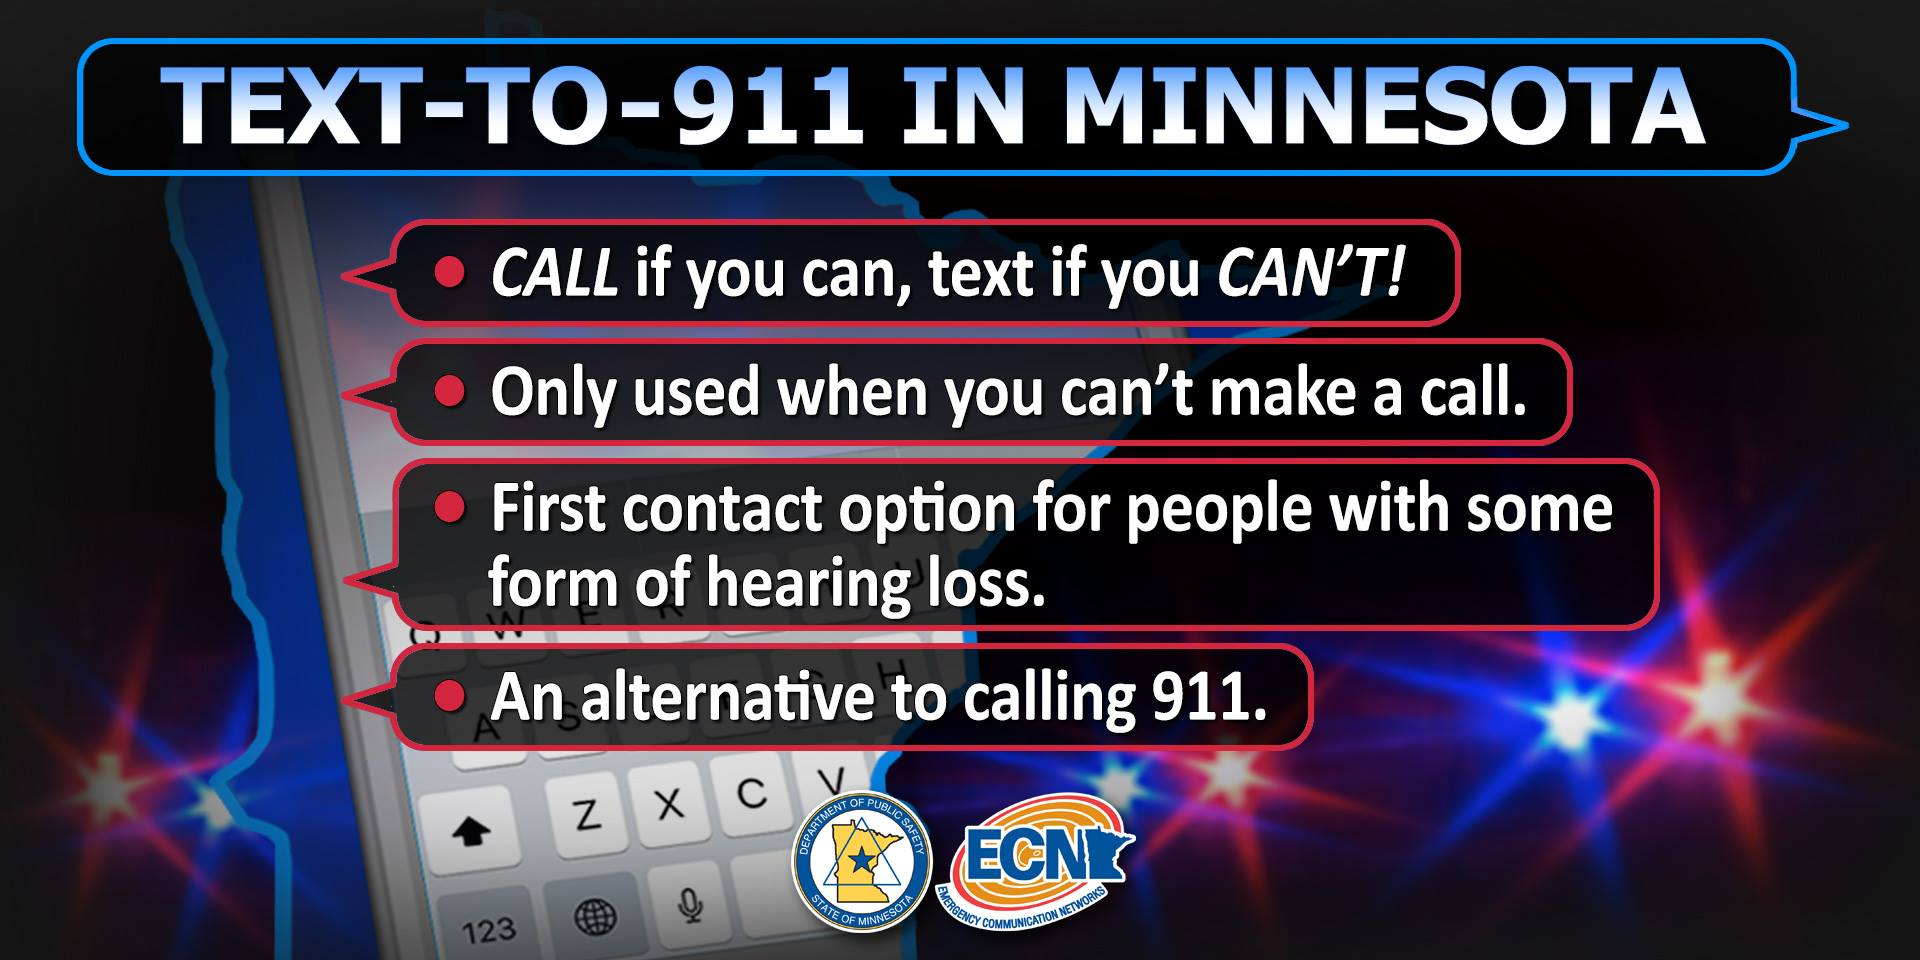 Text-to-911 in Minnesota